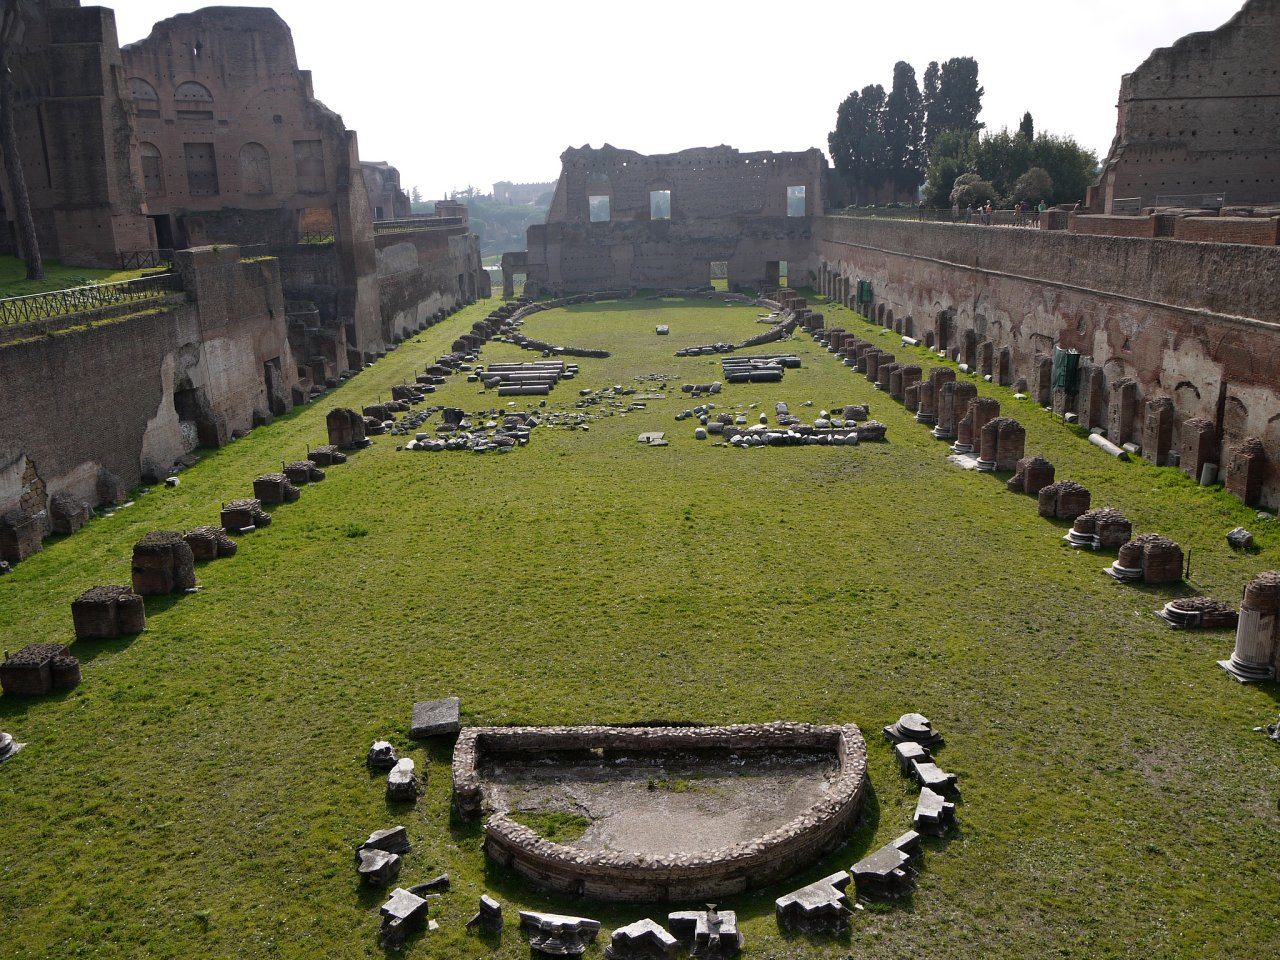 Stadium on the Palatine Hill, Rome Attractions, Italy